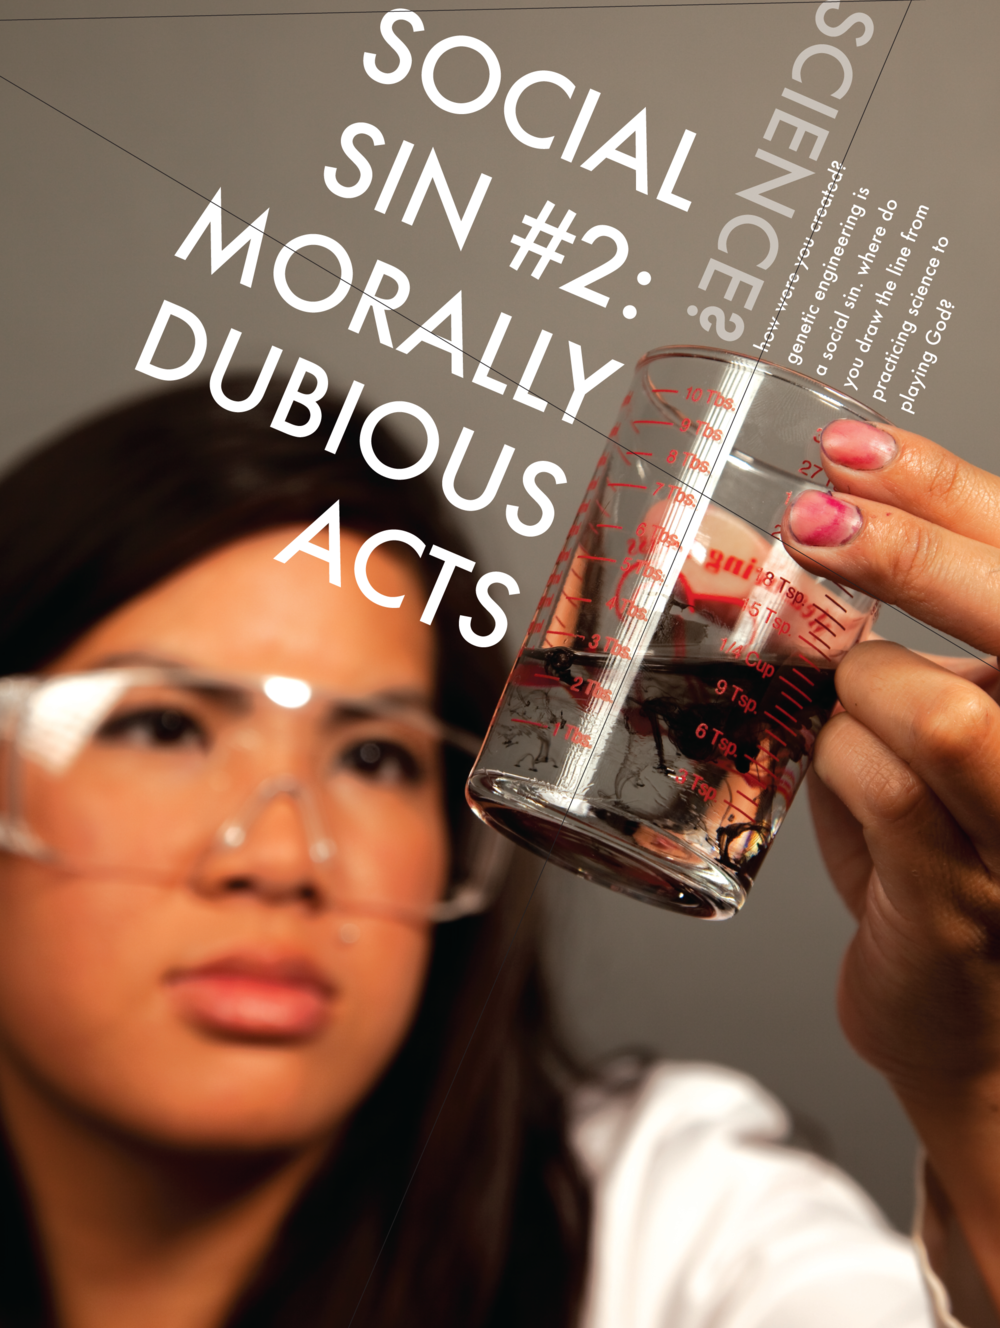 Social Sin #2 Morally Dubious Acts